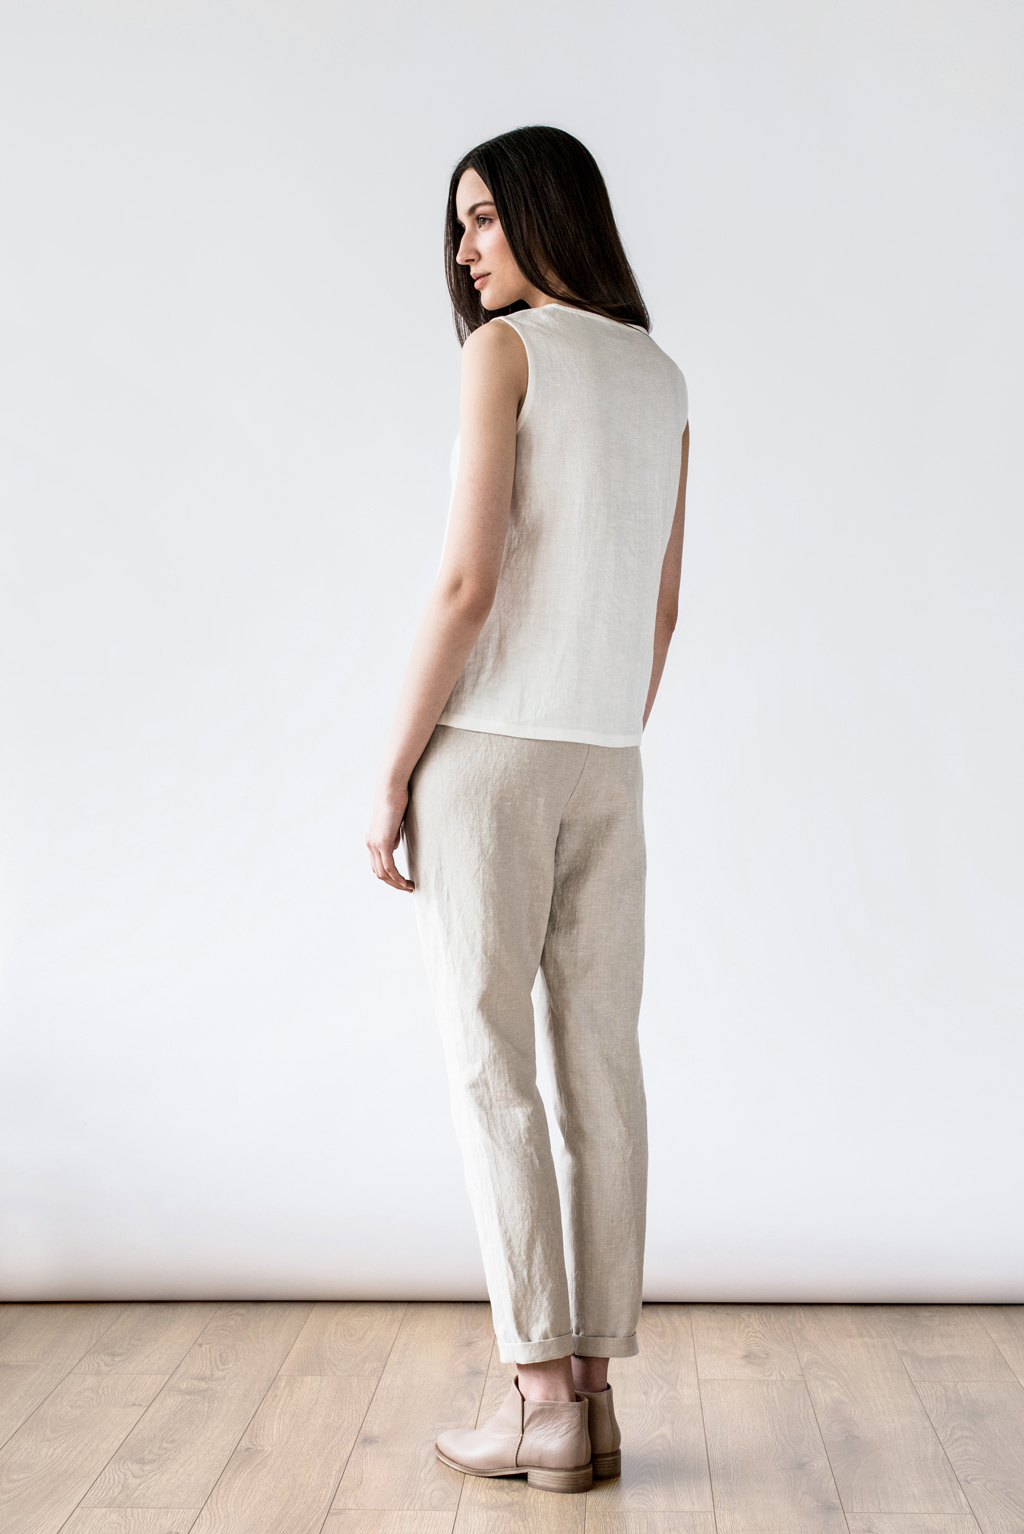 linen tank top by Ode to Sunday